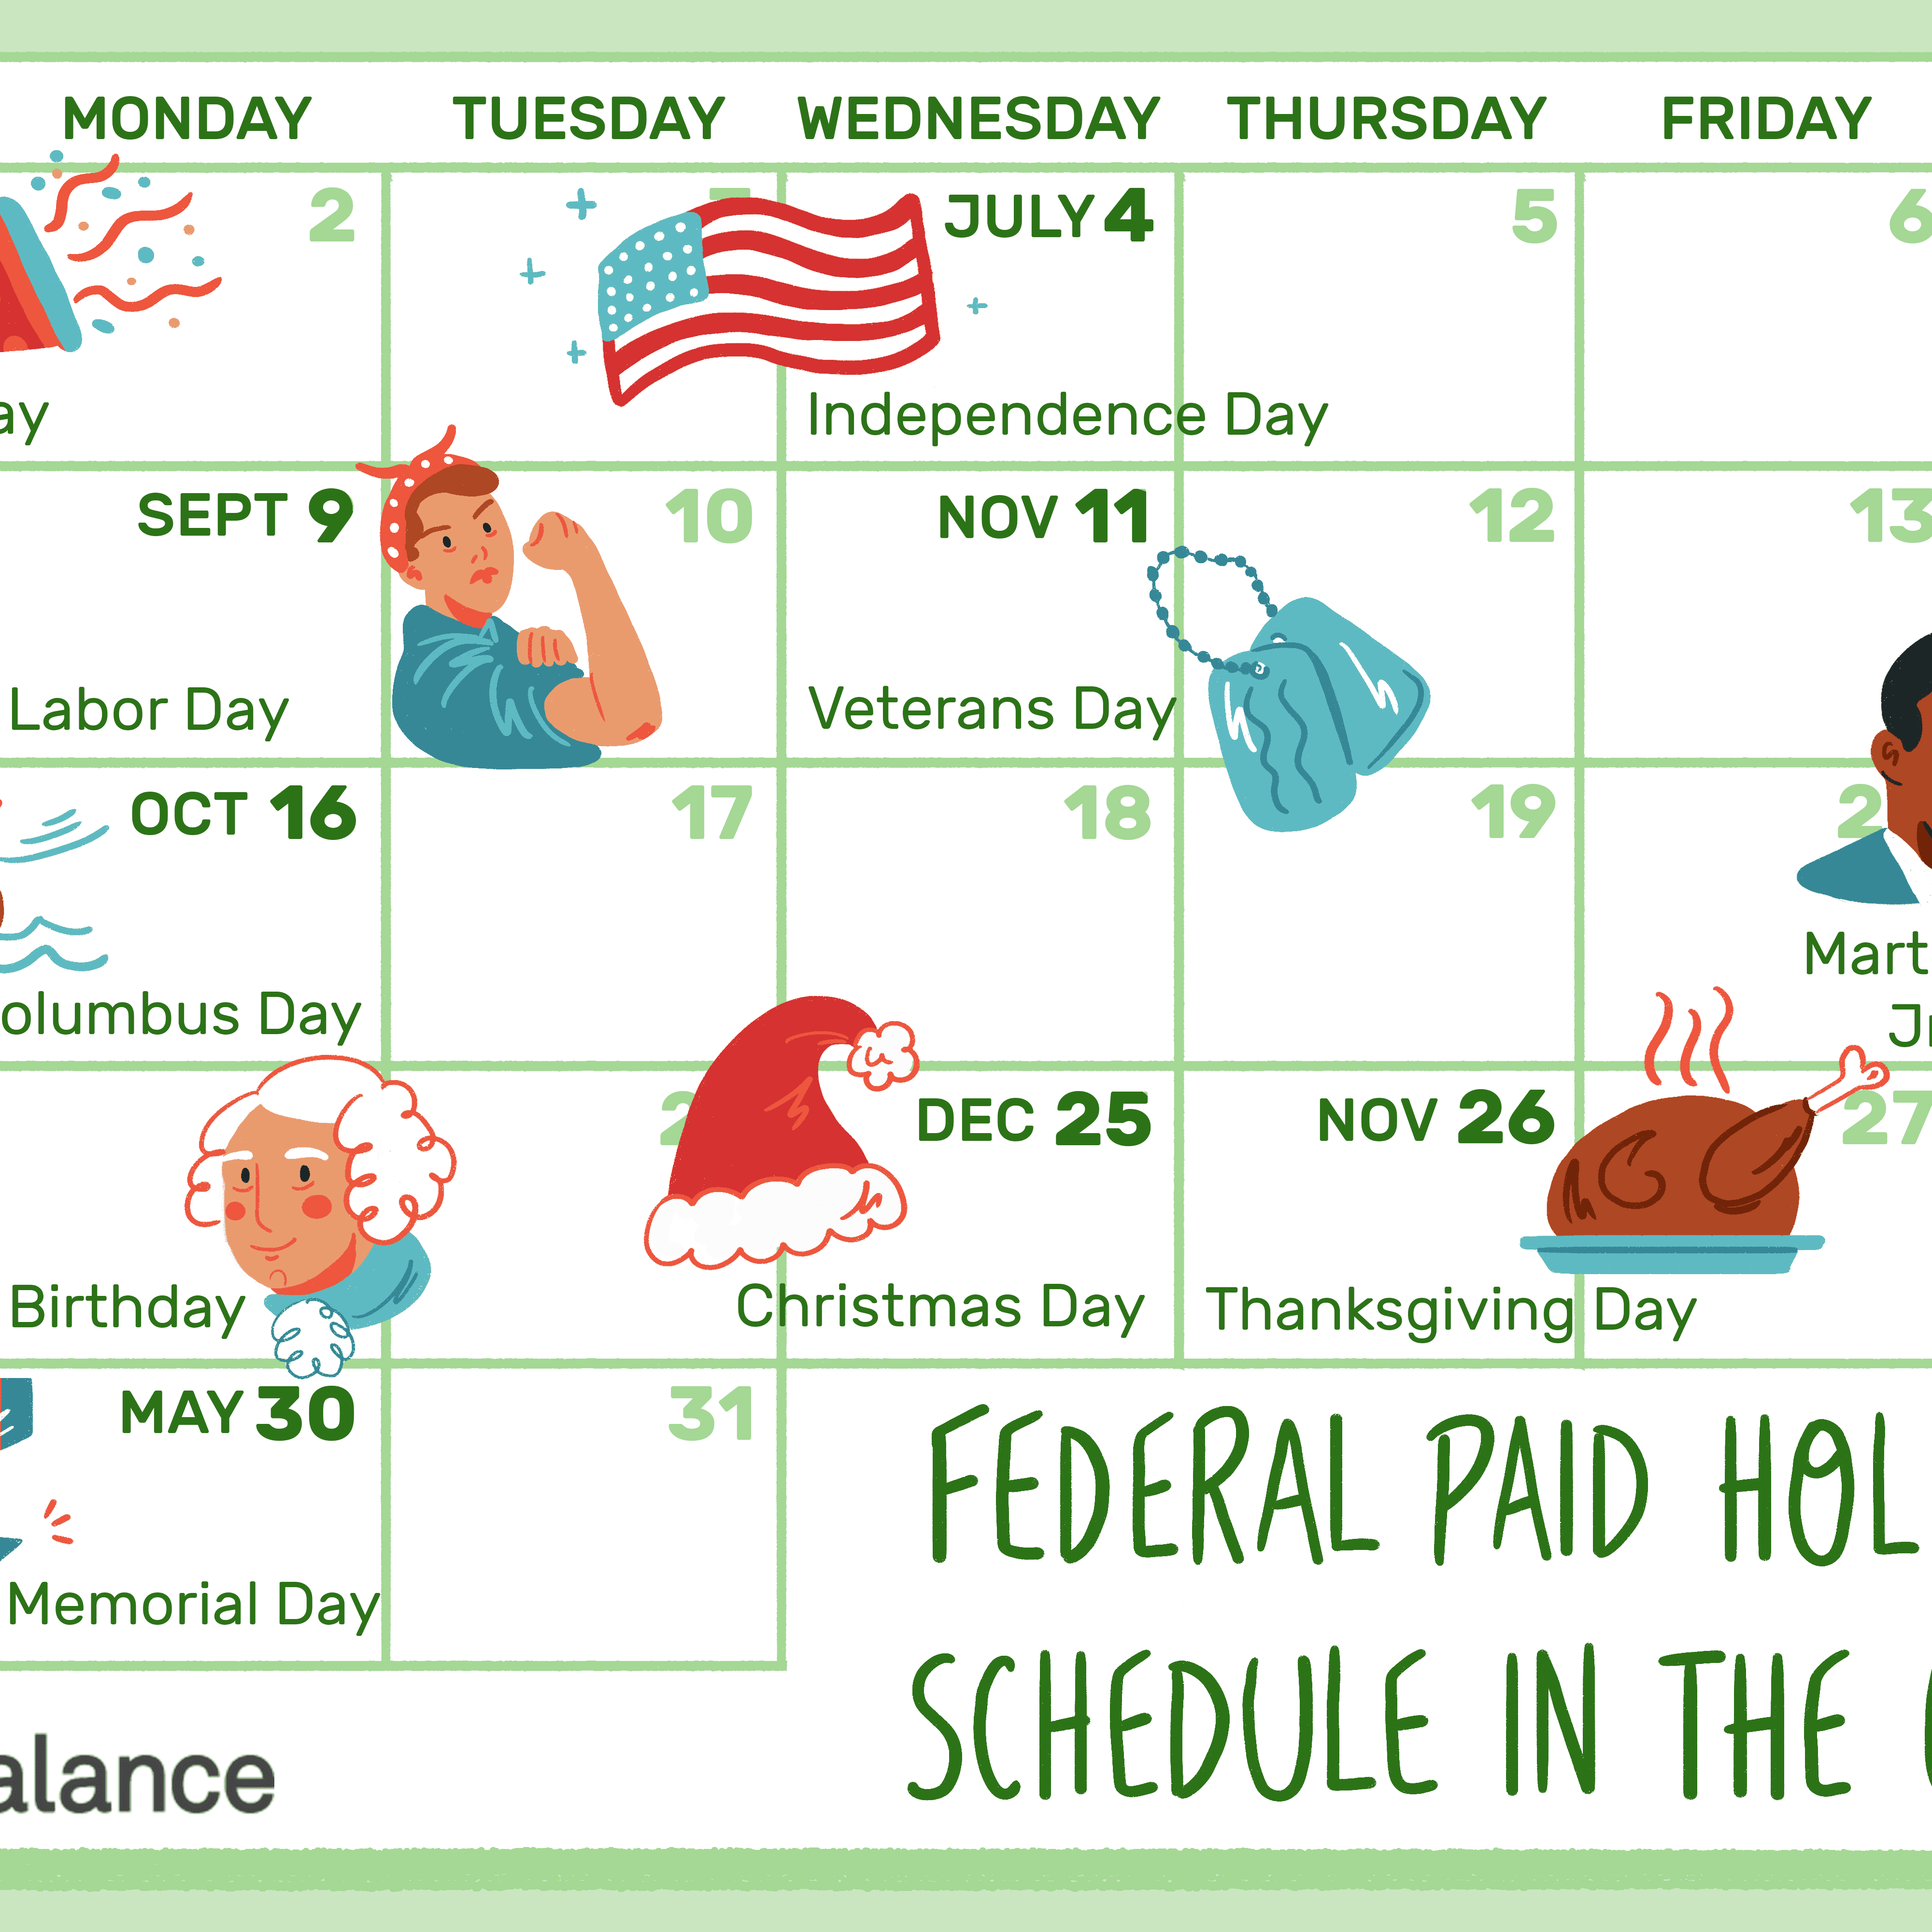 What's a Typical Paid Holiday Schedule